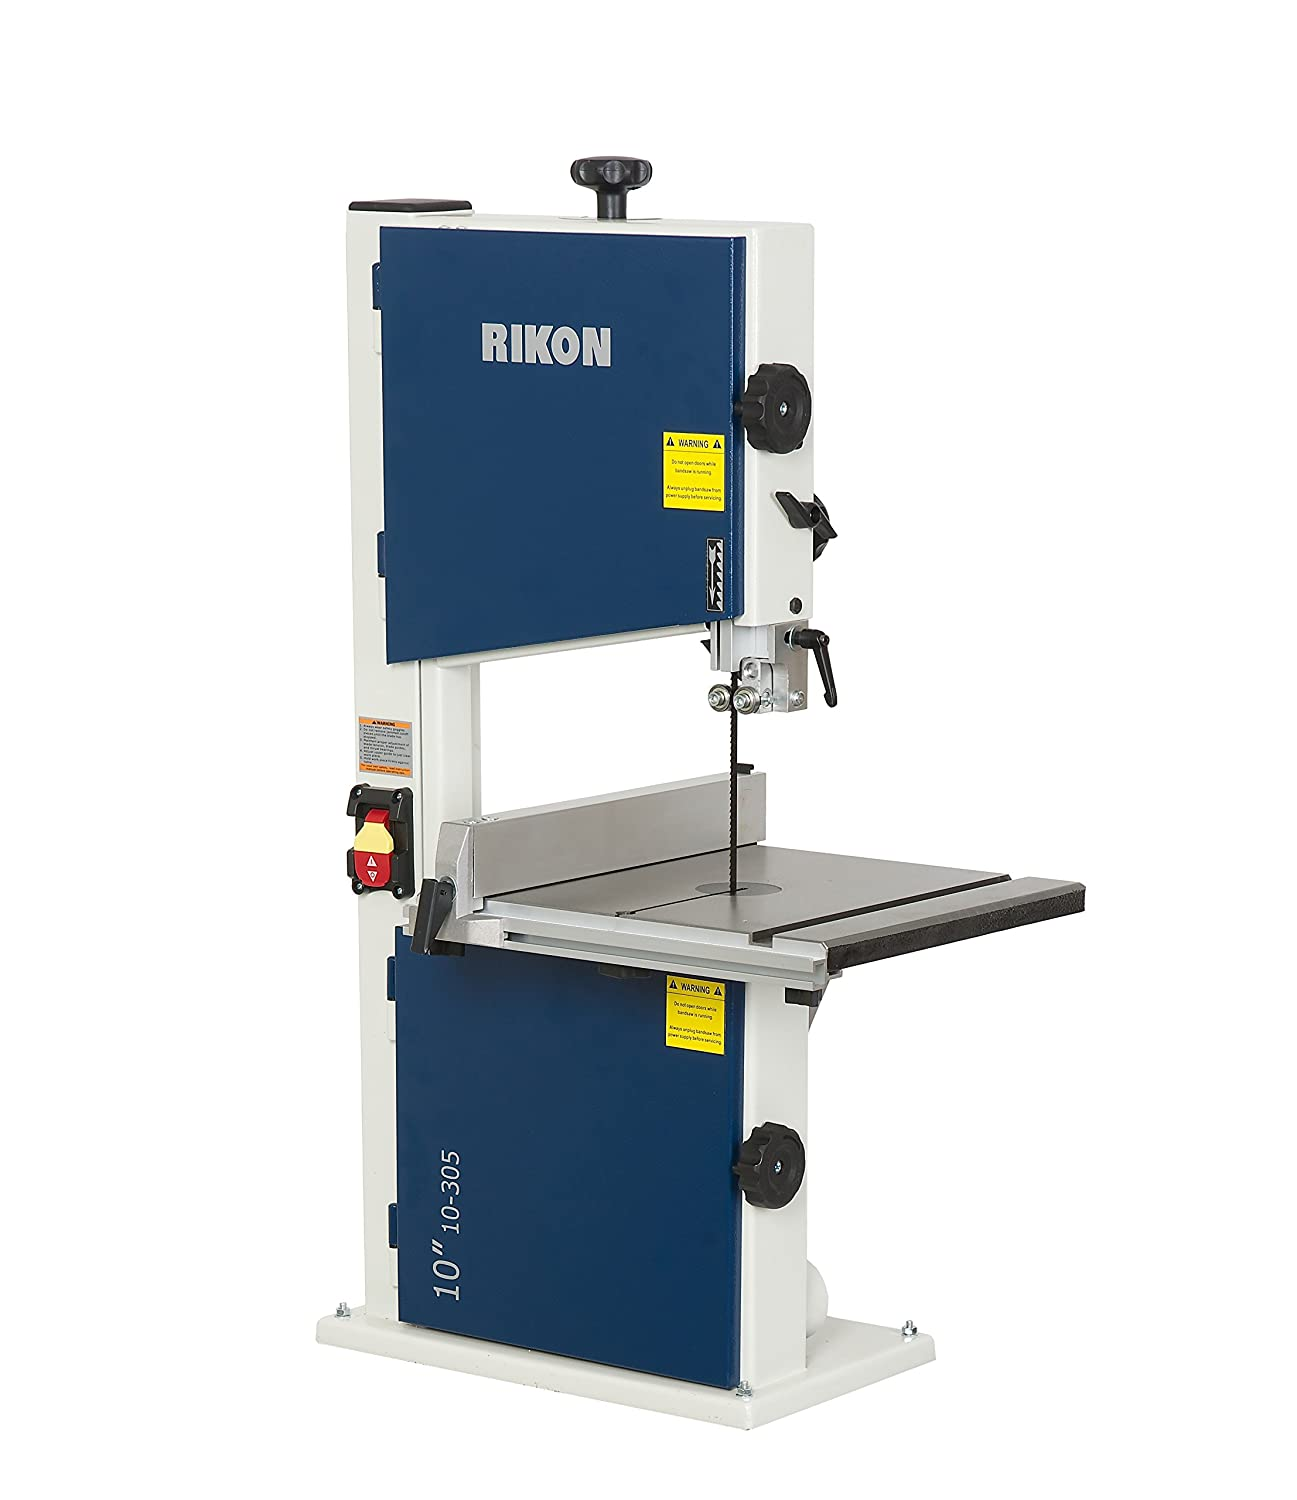 2. Rikon 10-305 Bandsaw with Fence